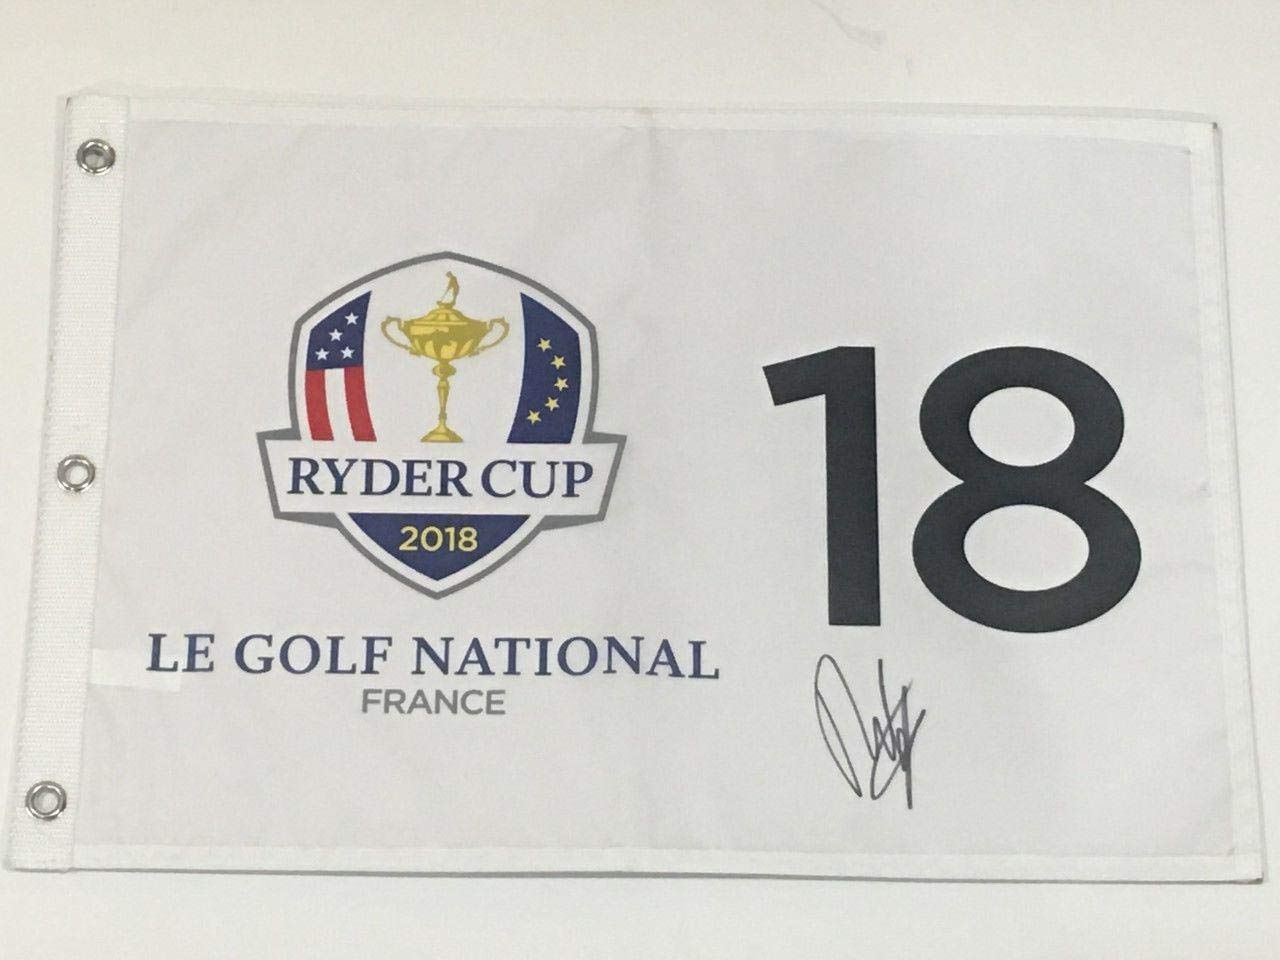 Francesco Molinari Signed 2018 Ryder Cup Flag British Open Europe Proof Italy Autographed Pin Flags